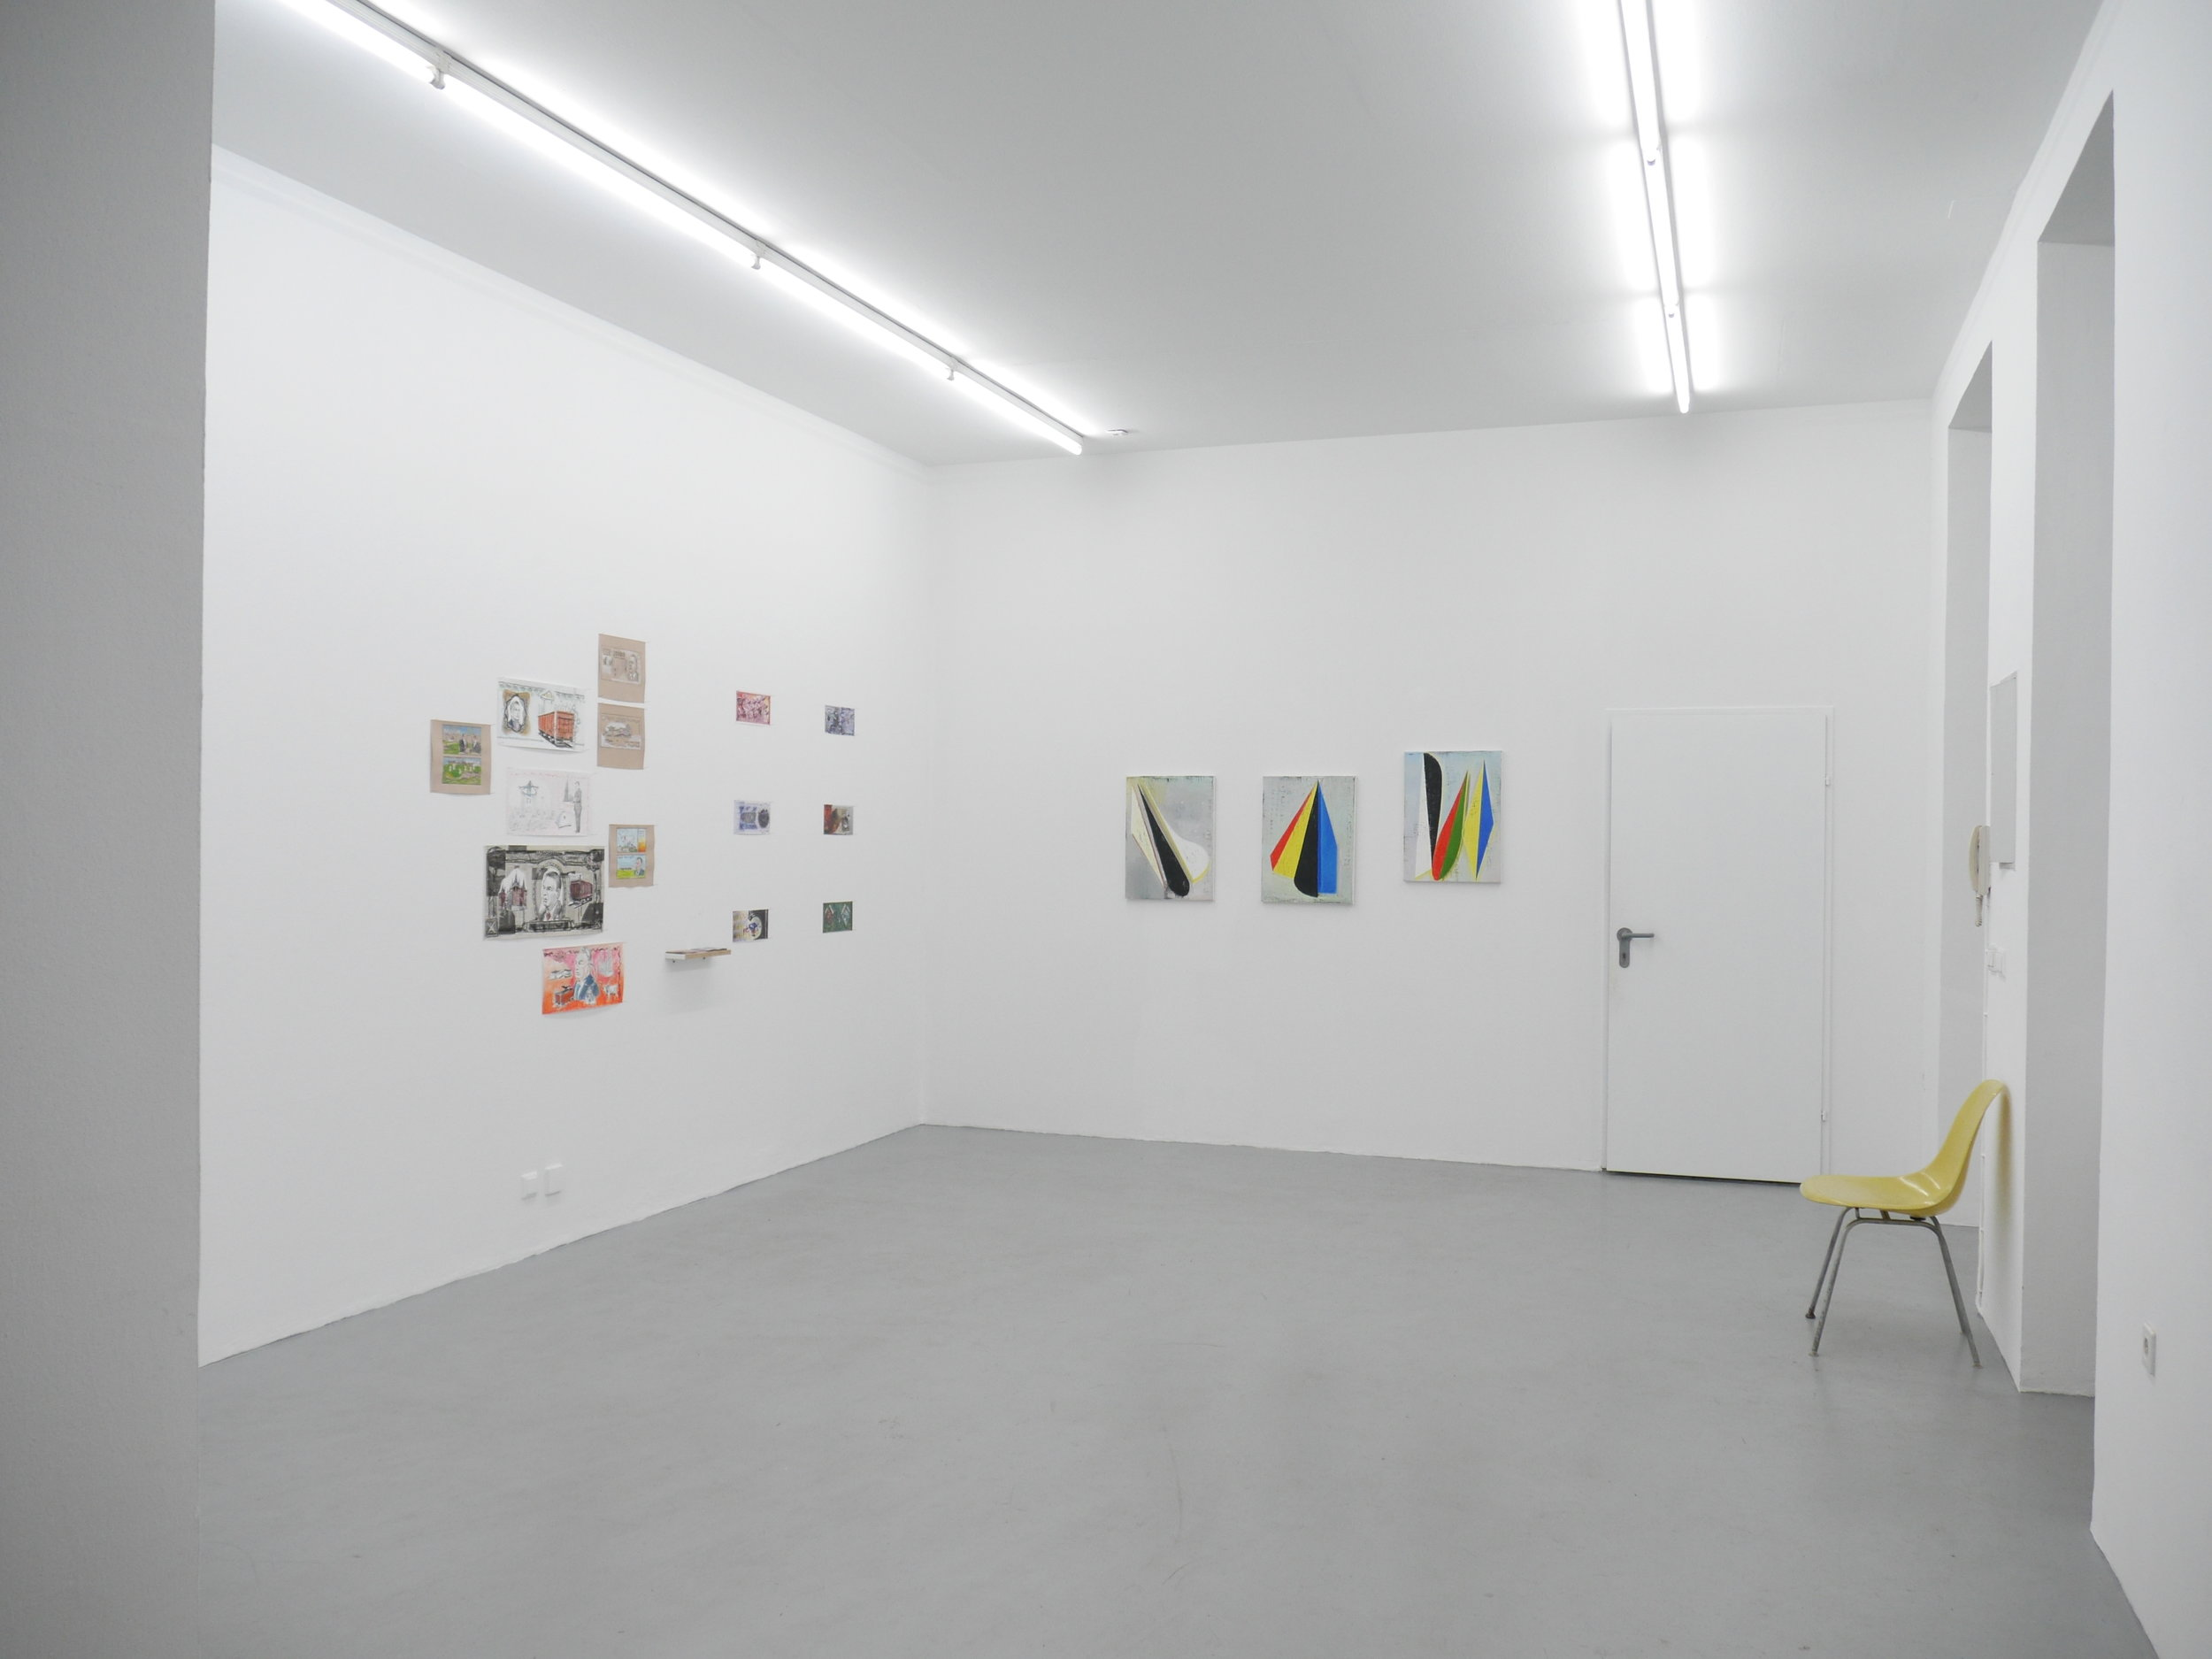 Exhibition View, Hommage — Ideal or Pattern?, curated by Edit Sasvári, Galerie Knoll, 2016, Courtesy: Galerie Knoll